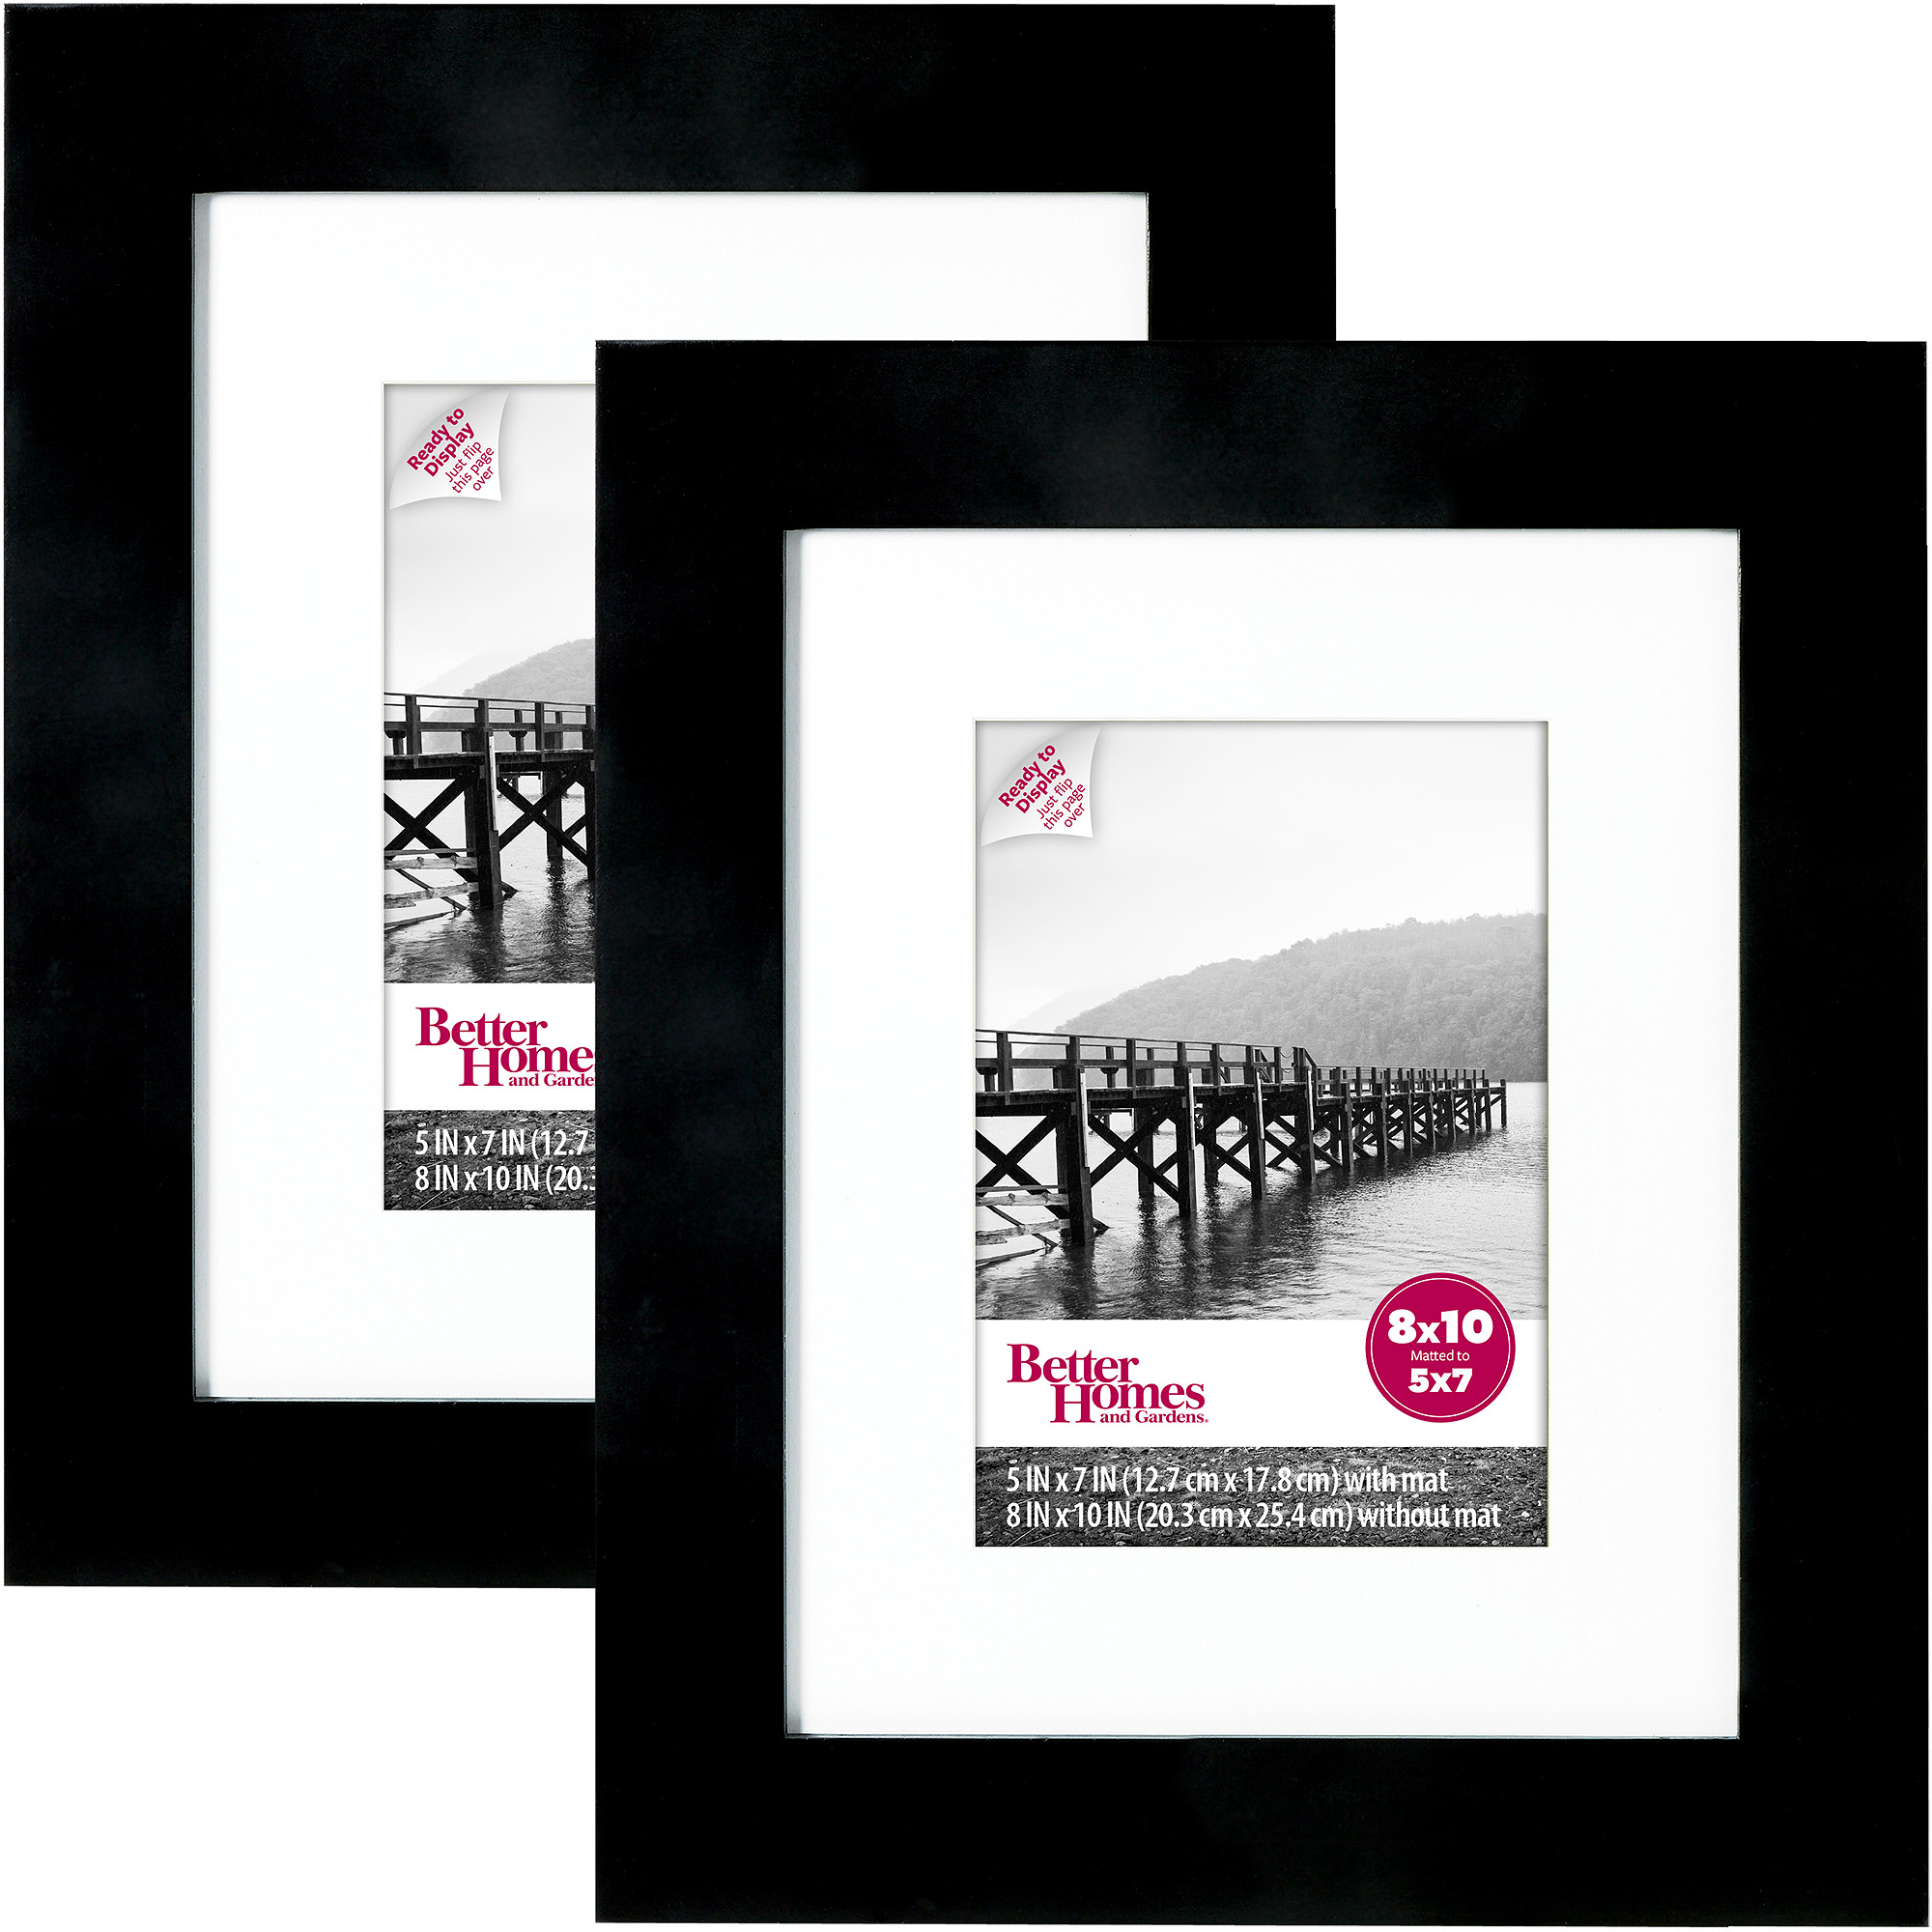 Better Homes and Gardens 8x10 Wide Picture Frame, Black, Set of 2